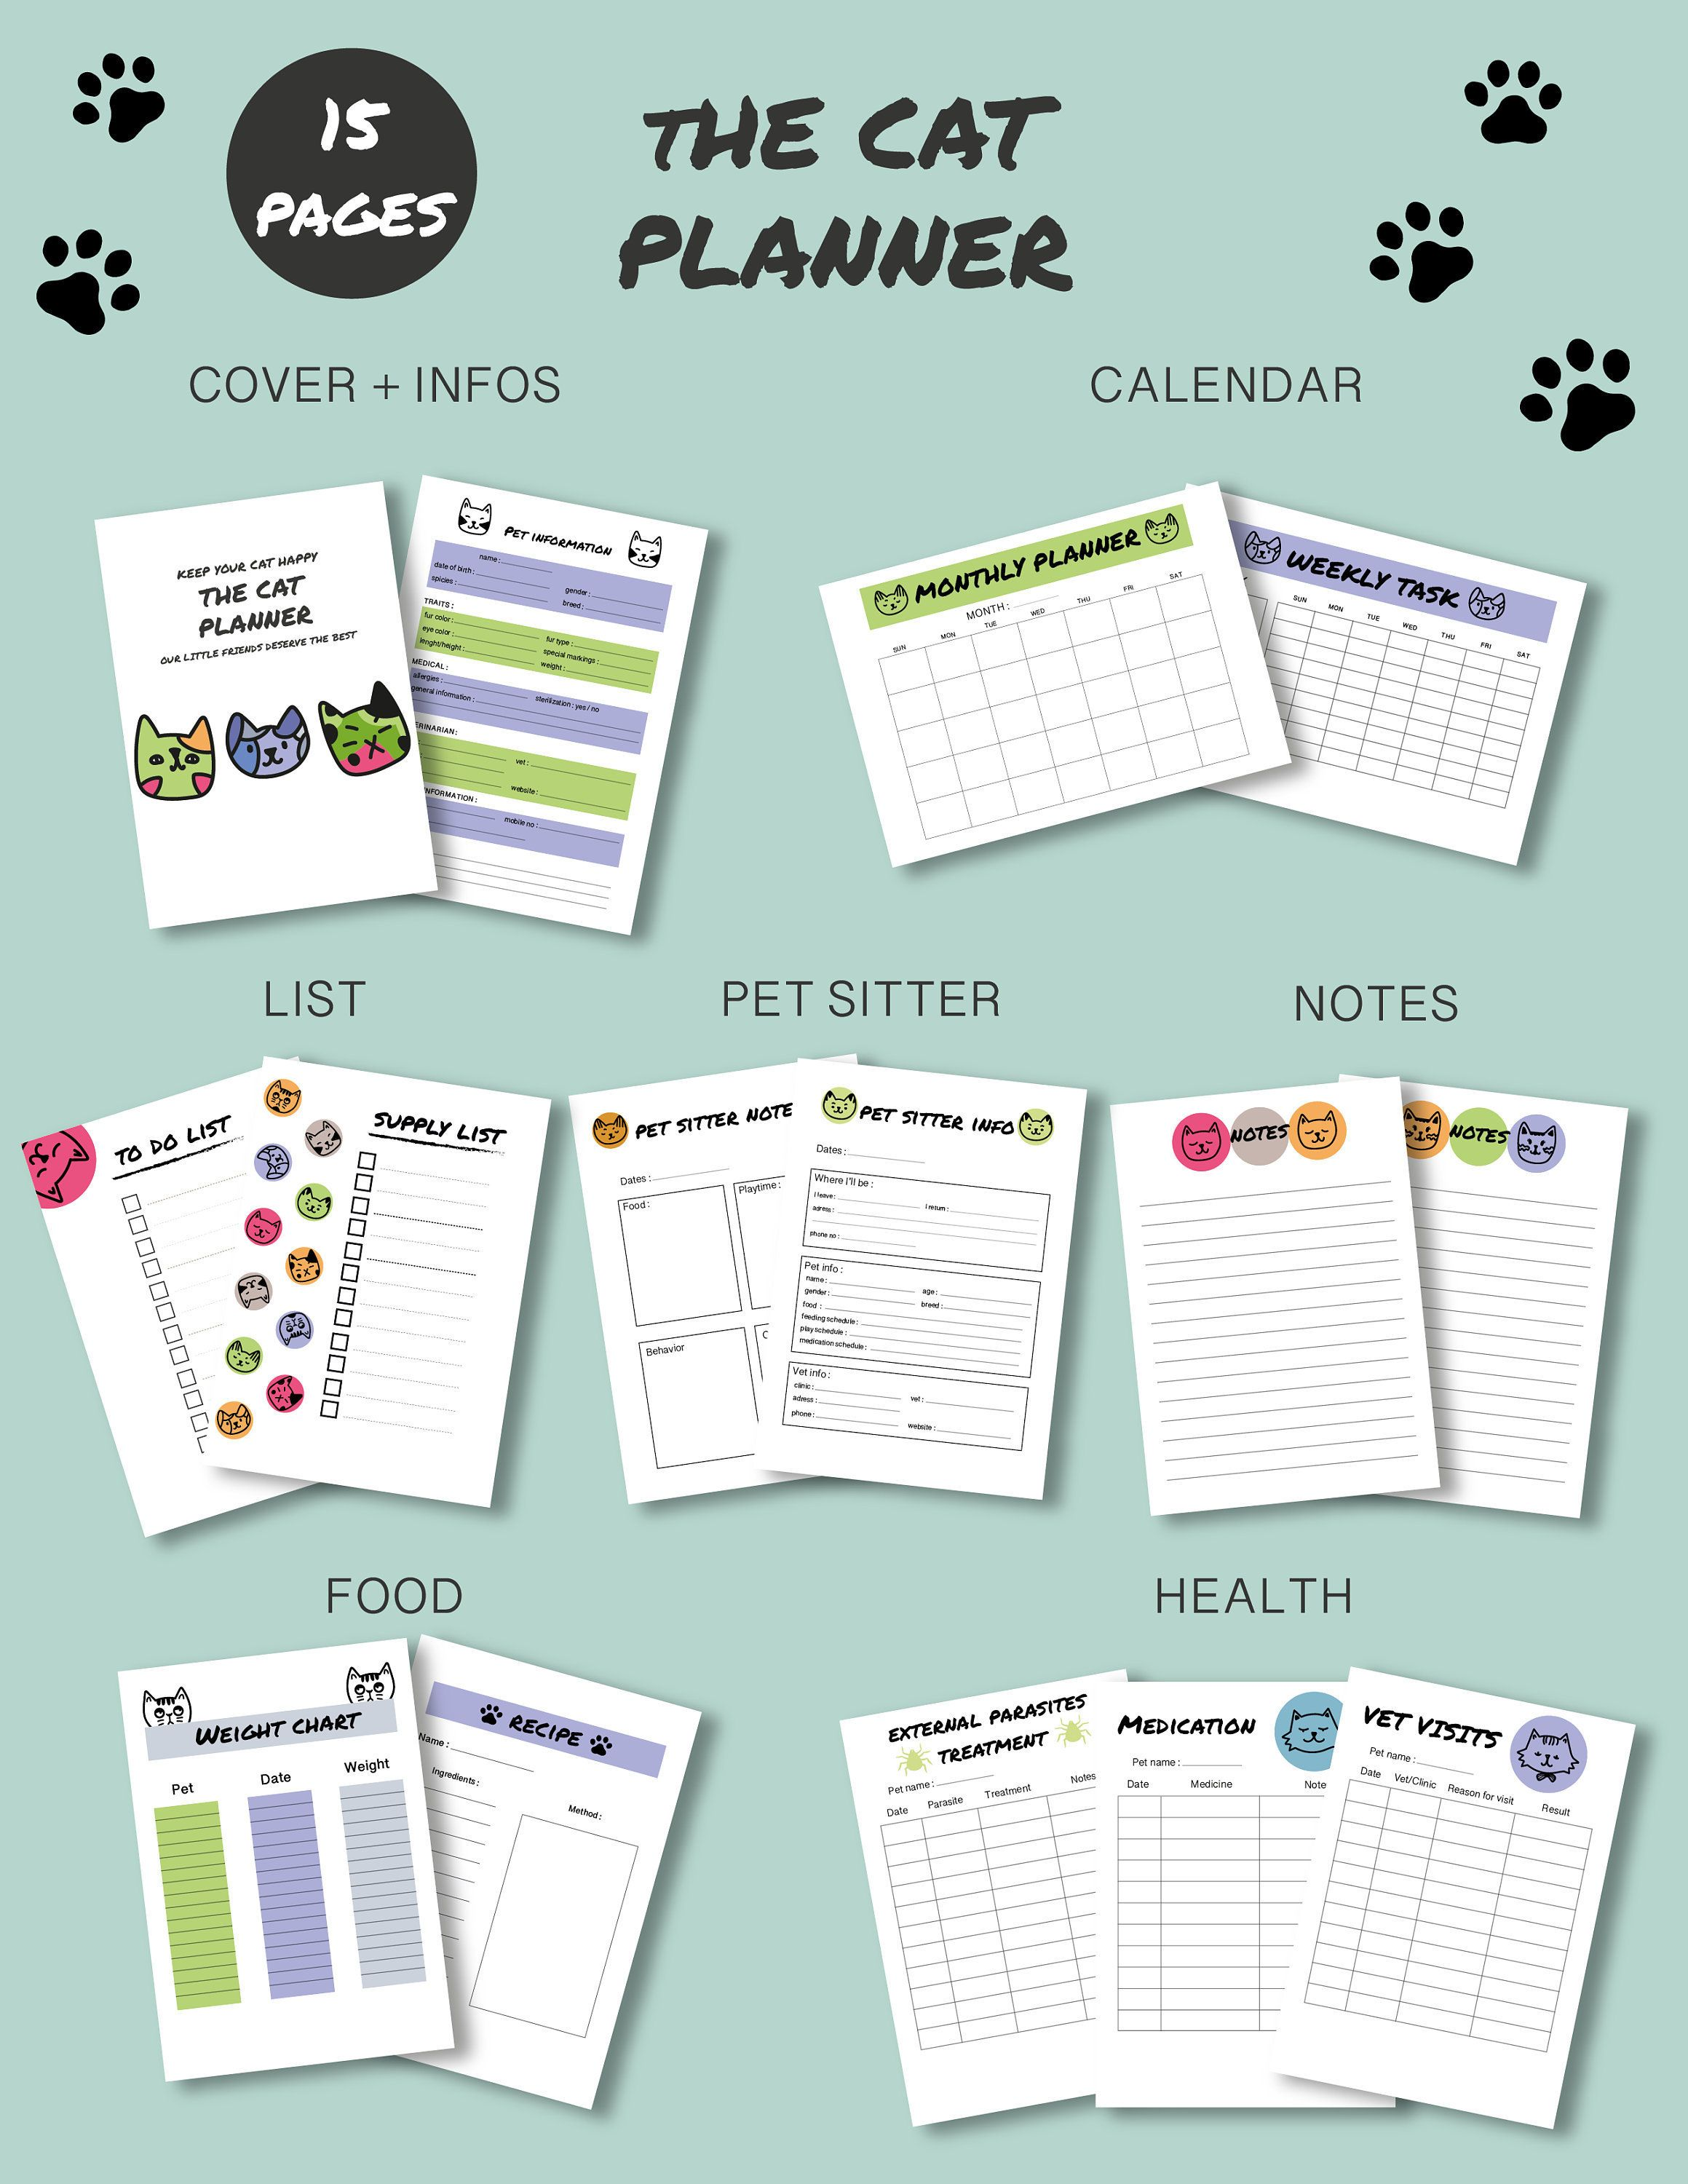 Cat Printable Planner For Pet Care Instant Download Pet Etsy In 2020 Printable Planner Pet Care Printables Planner